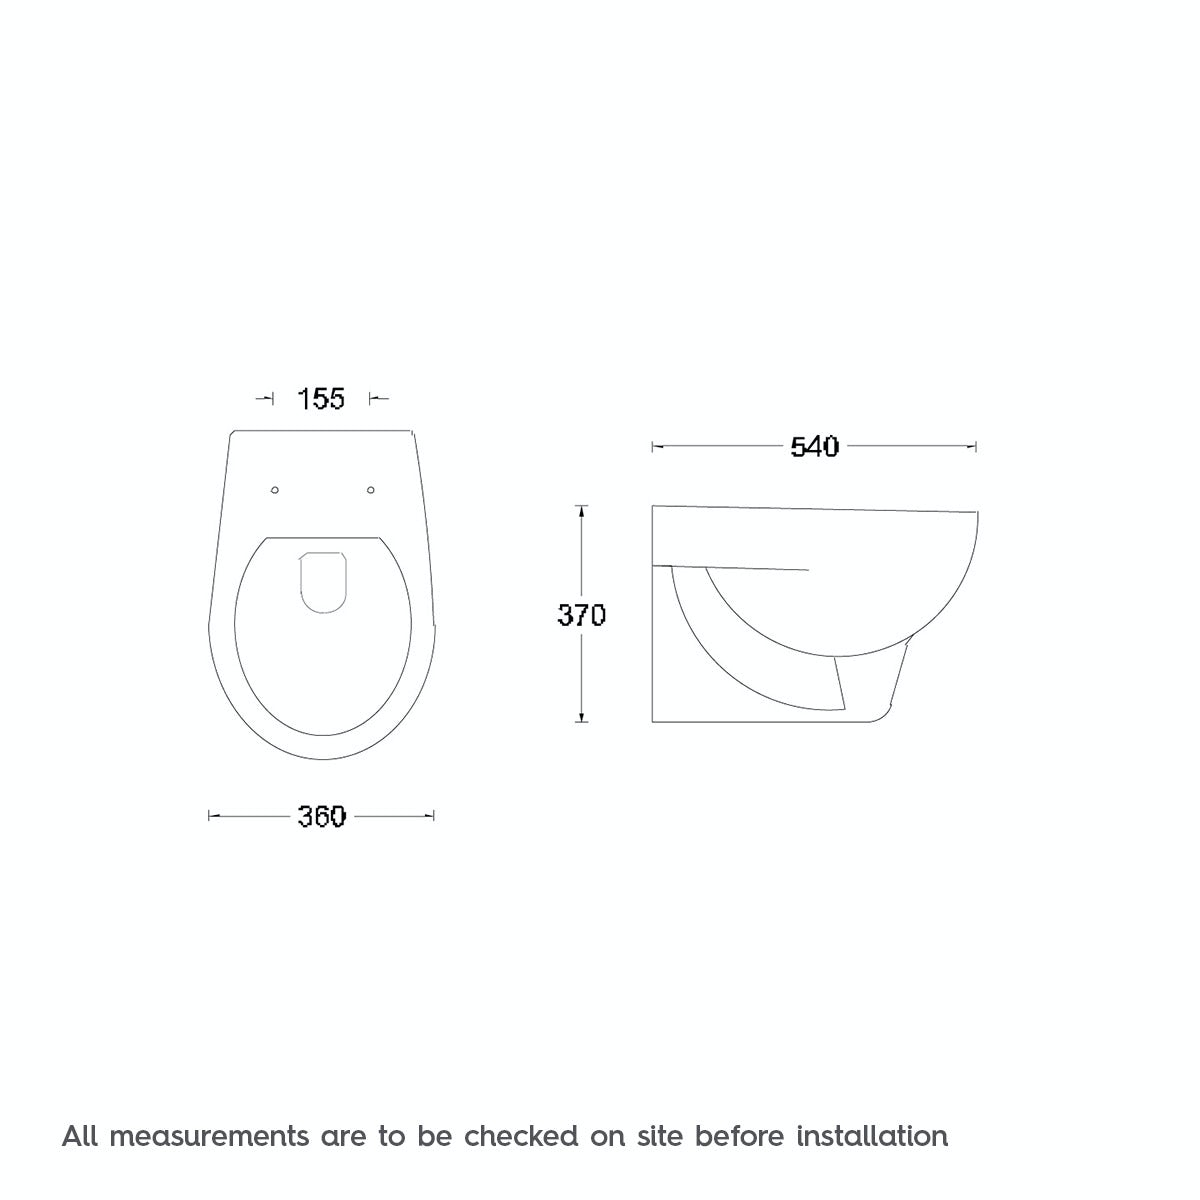 Dimensions for Orchard Elena wall hung toilet with seat